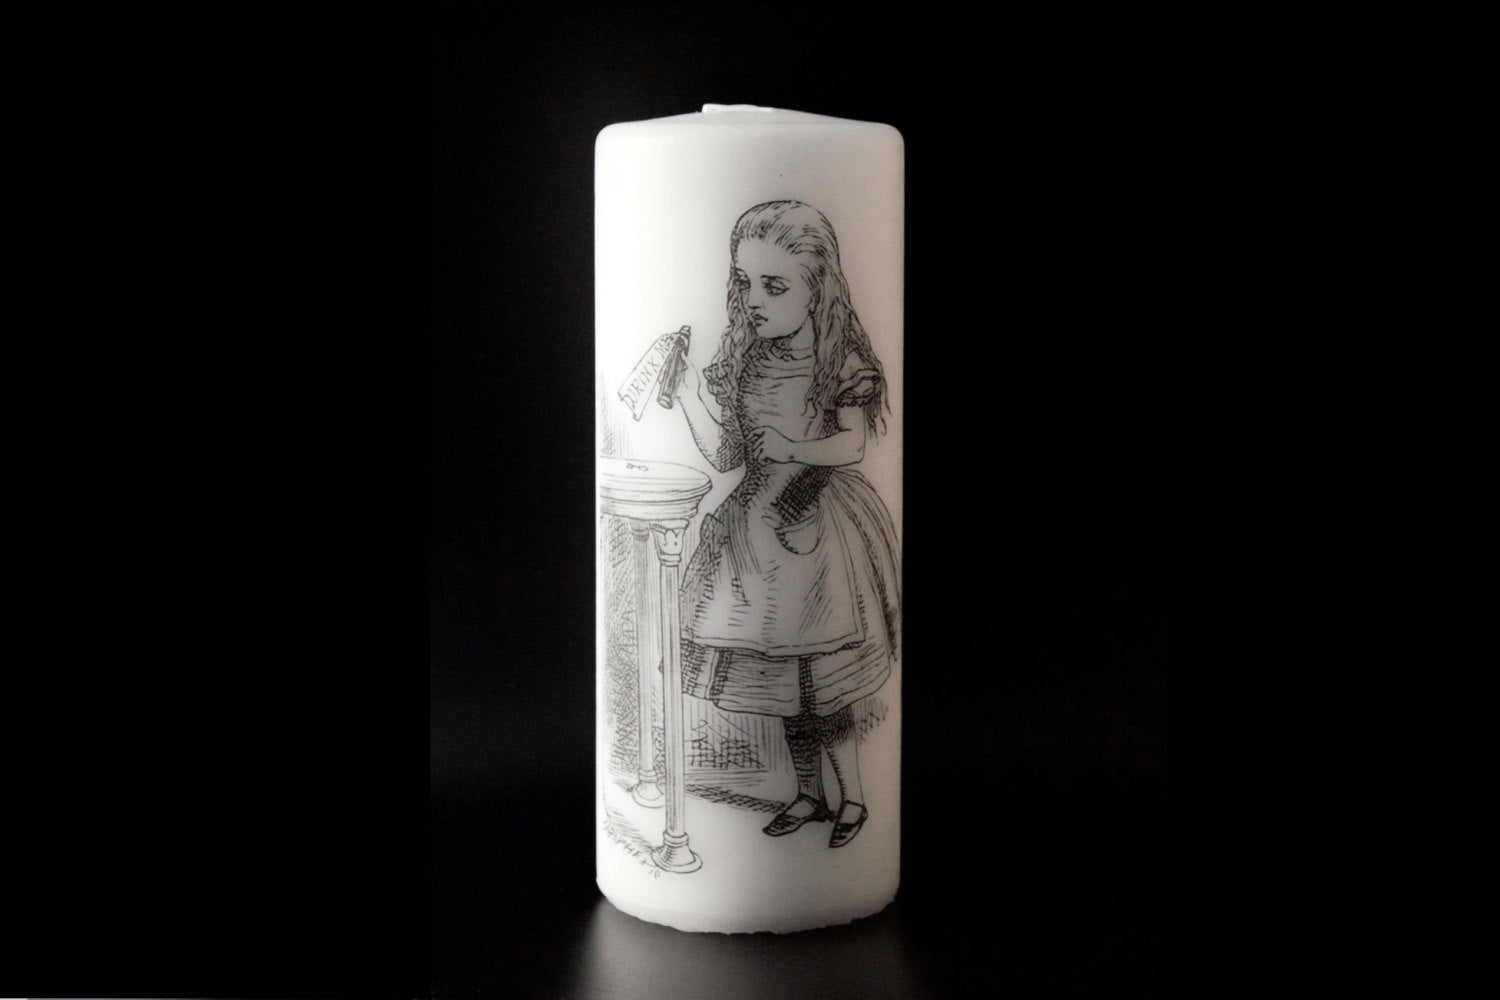 Alice in wonderland - Drink Me - Pillar Candle - Whimsical Decor - ByCandlelight27